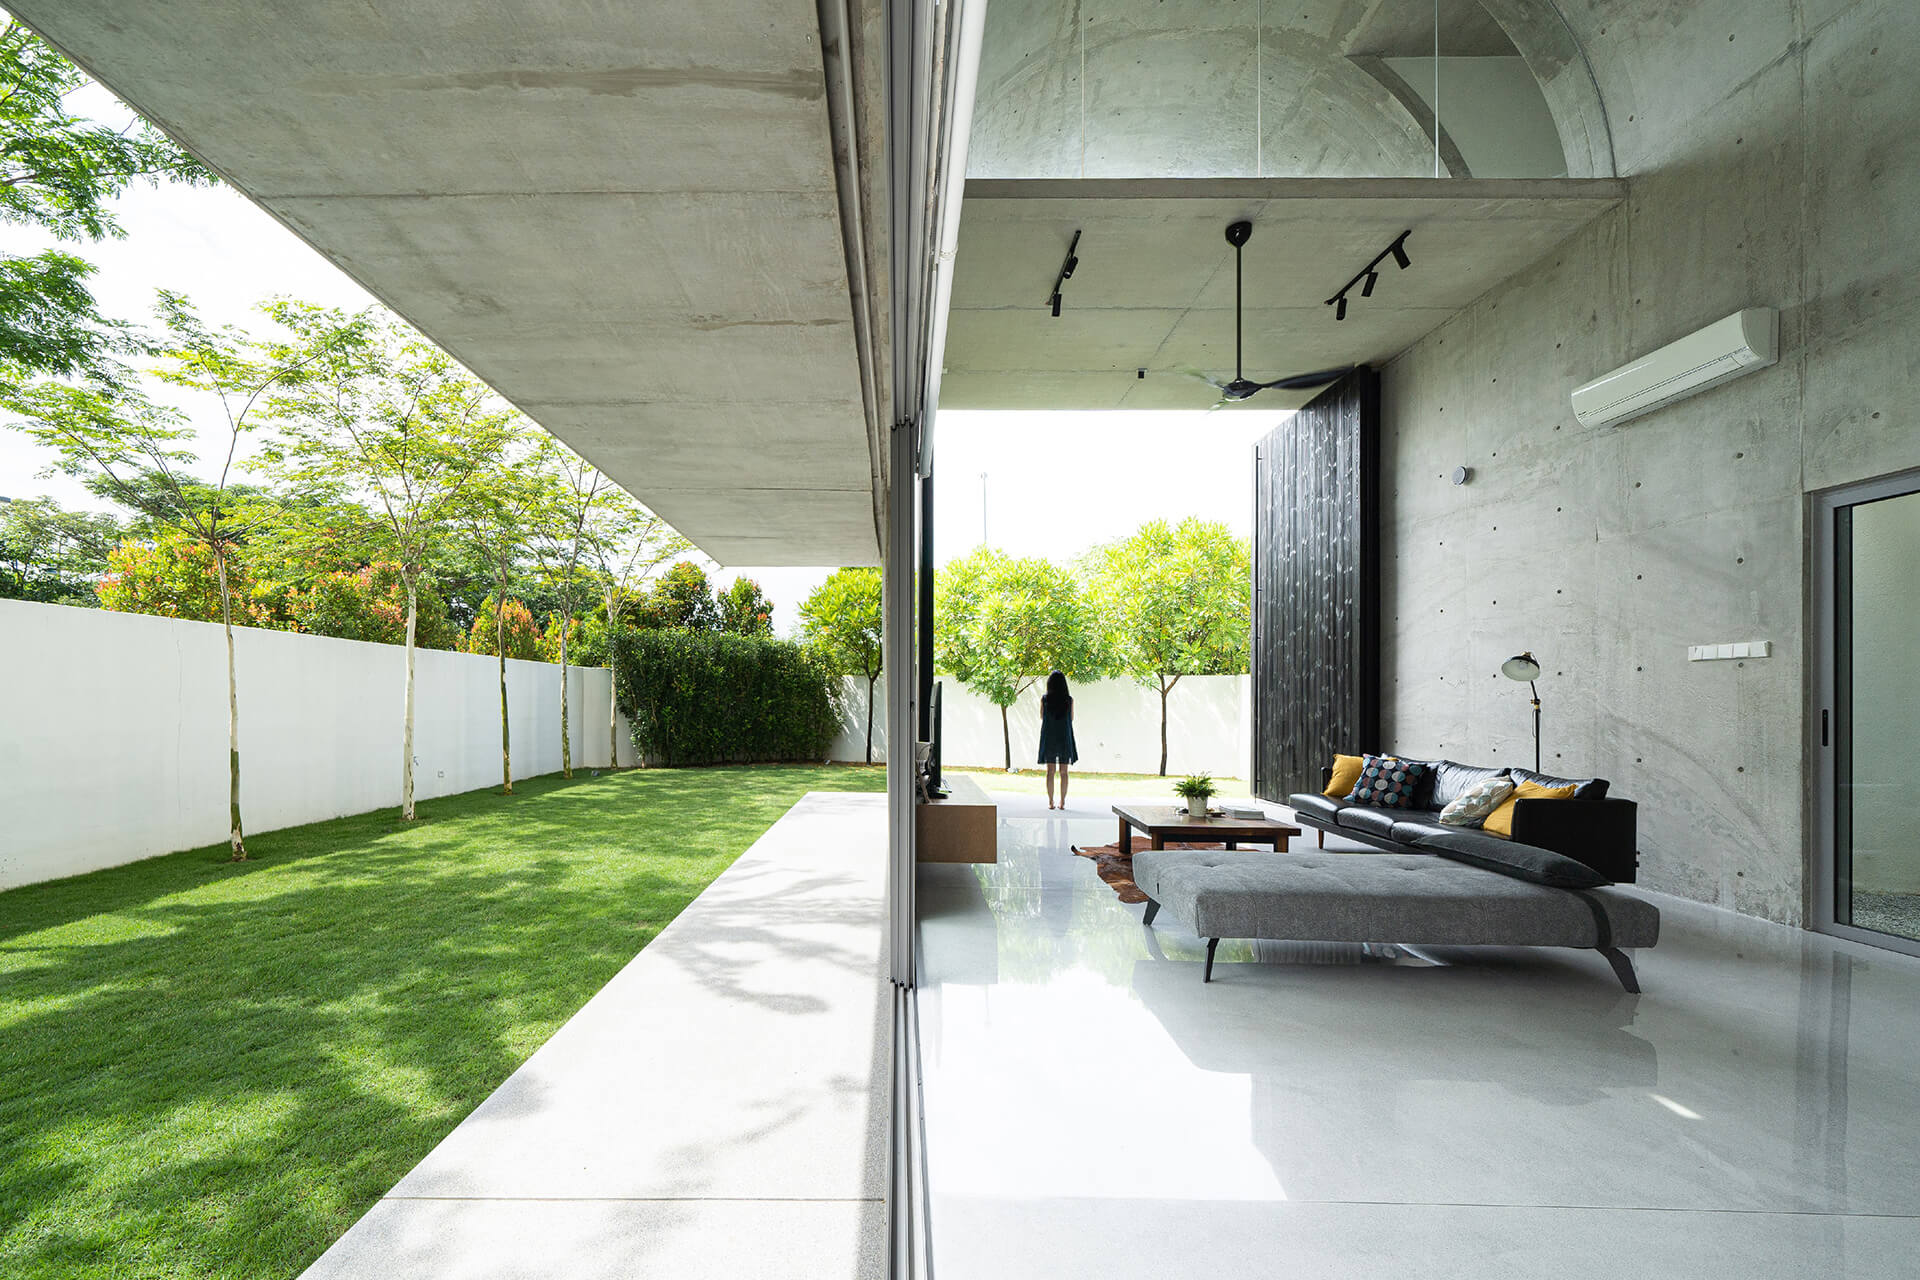 Sliding doors connect the living space with the garden | Kuala Lampur, Malaysia | Fabian Tan | STIRworld